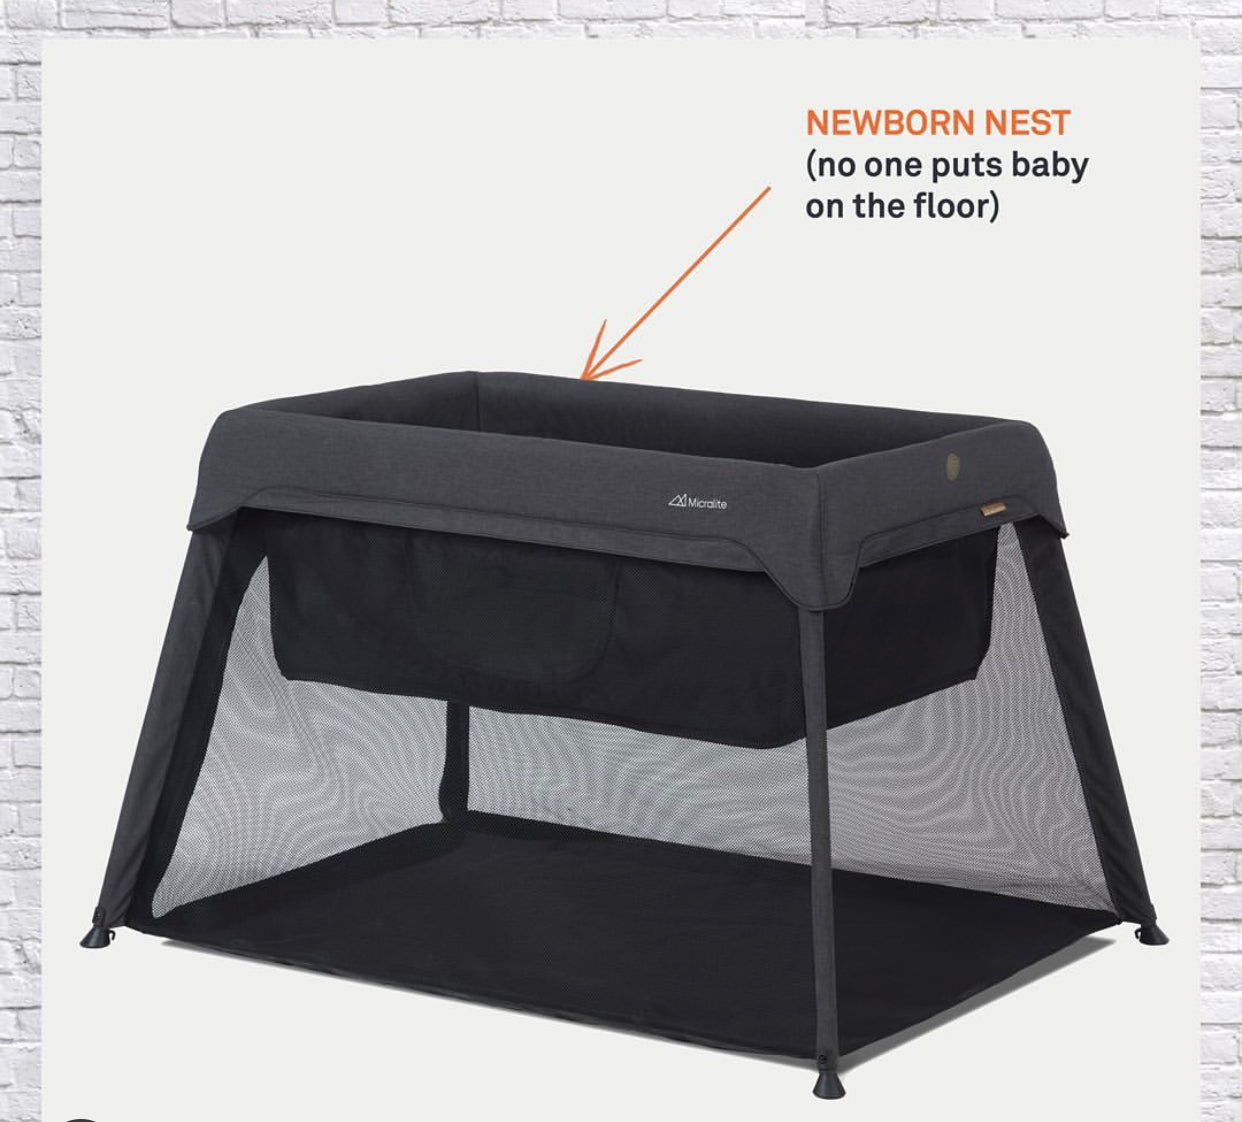 Micralite Sleep & Go Travel Cot with newborn insert and carry bag